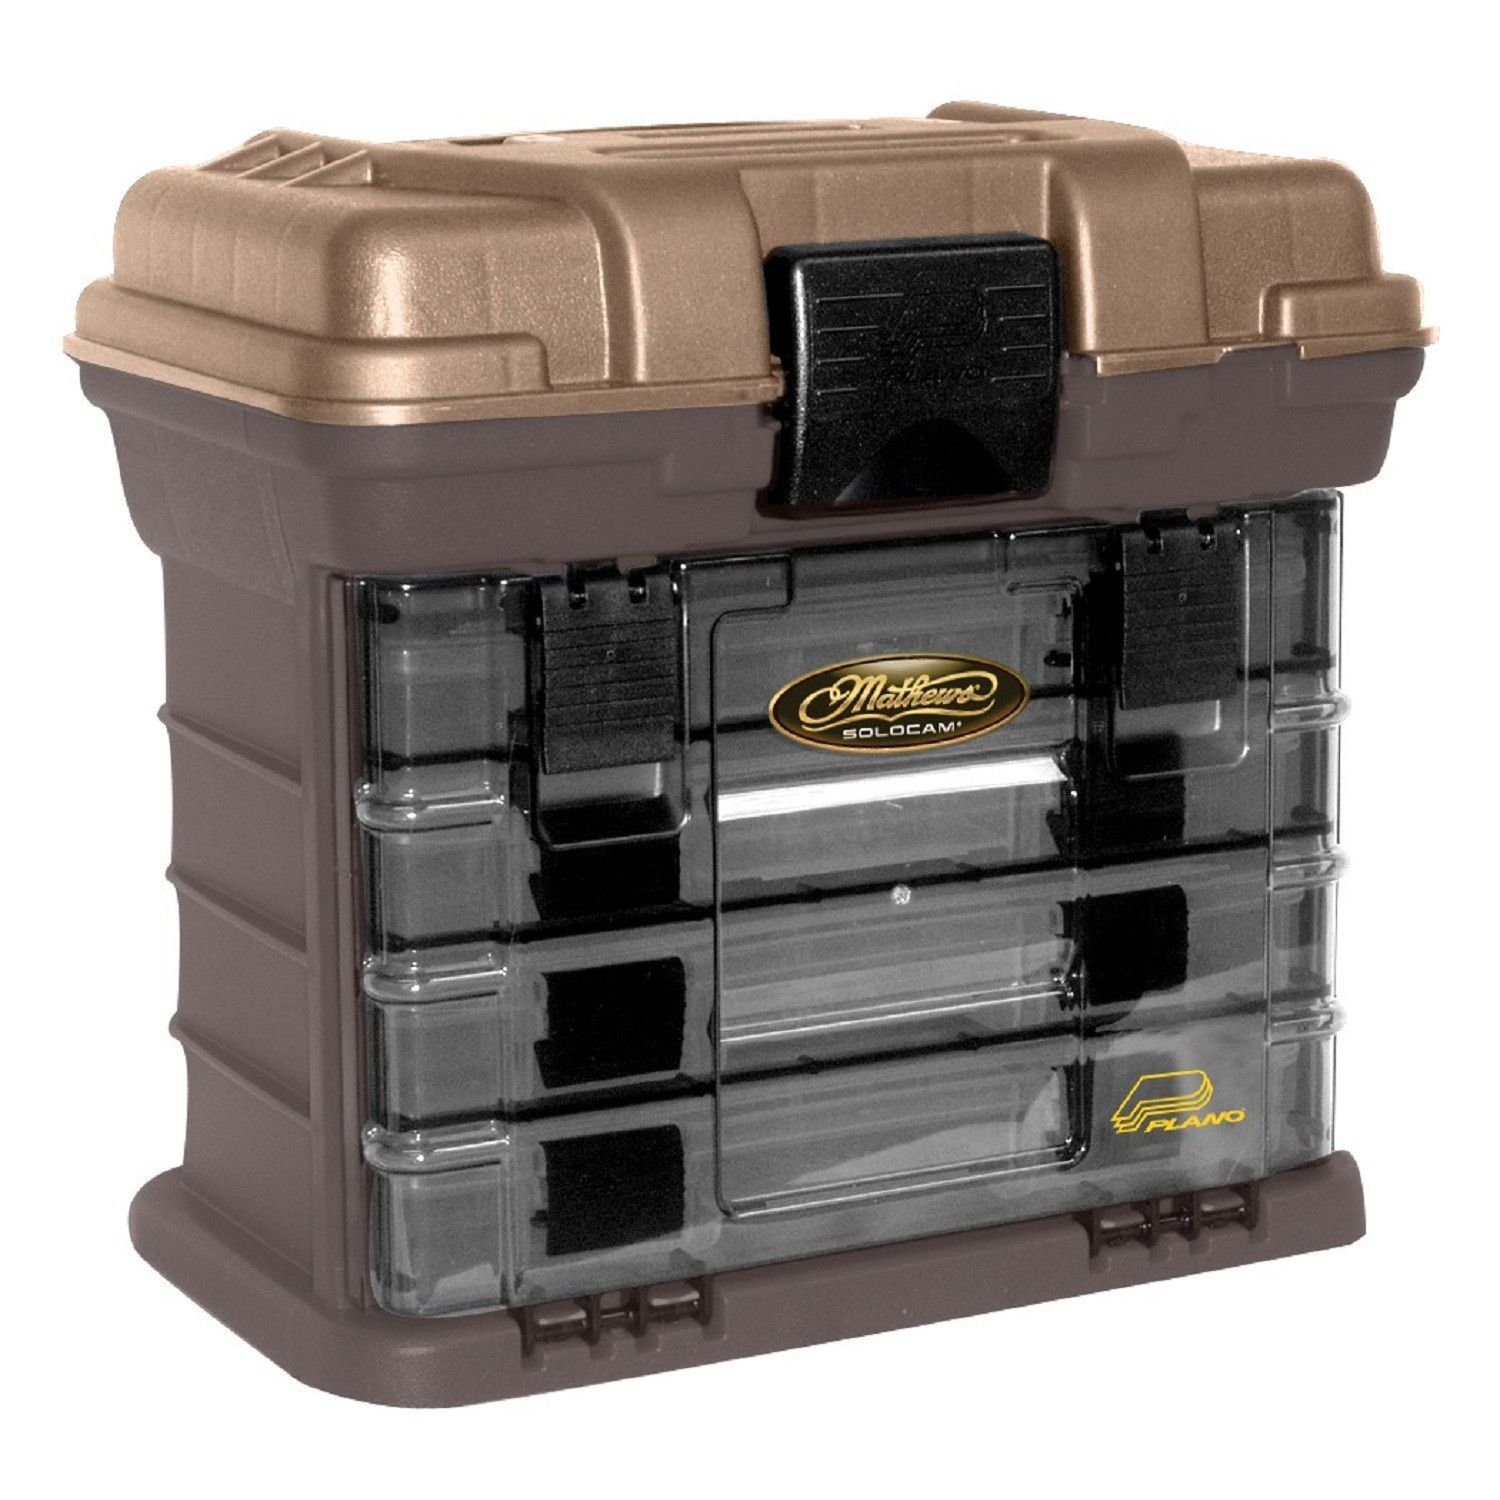 Plano 135430 4 By-3500 Series StowAway System,